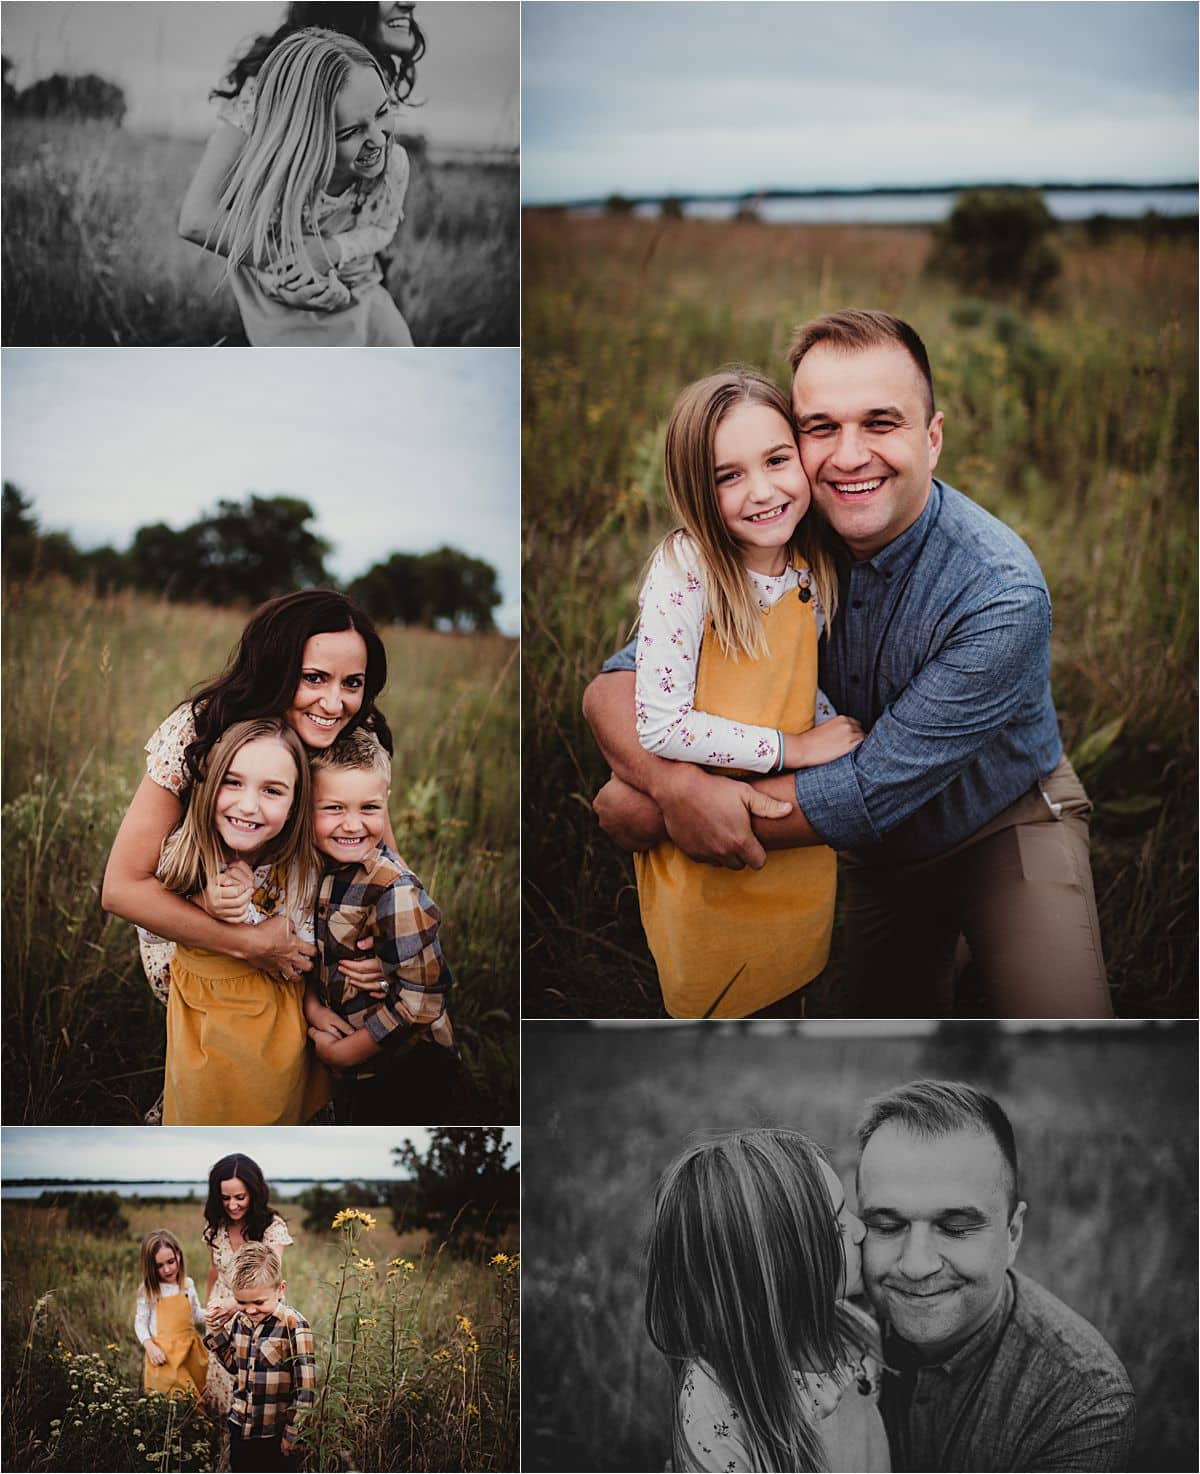 Prairie Park Family Session Family Snuggling